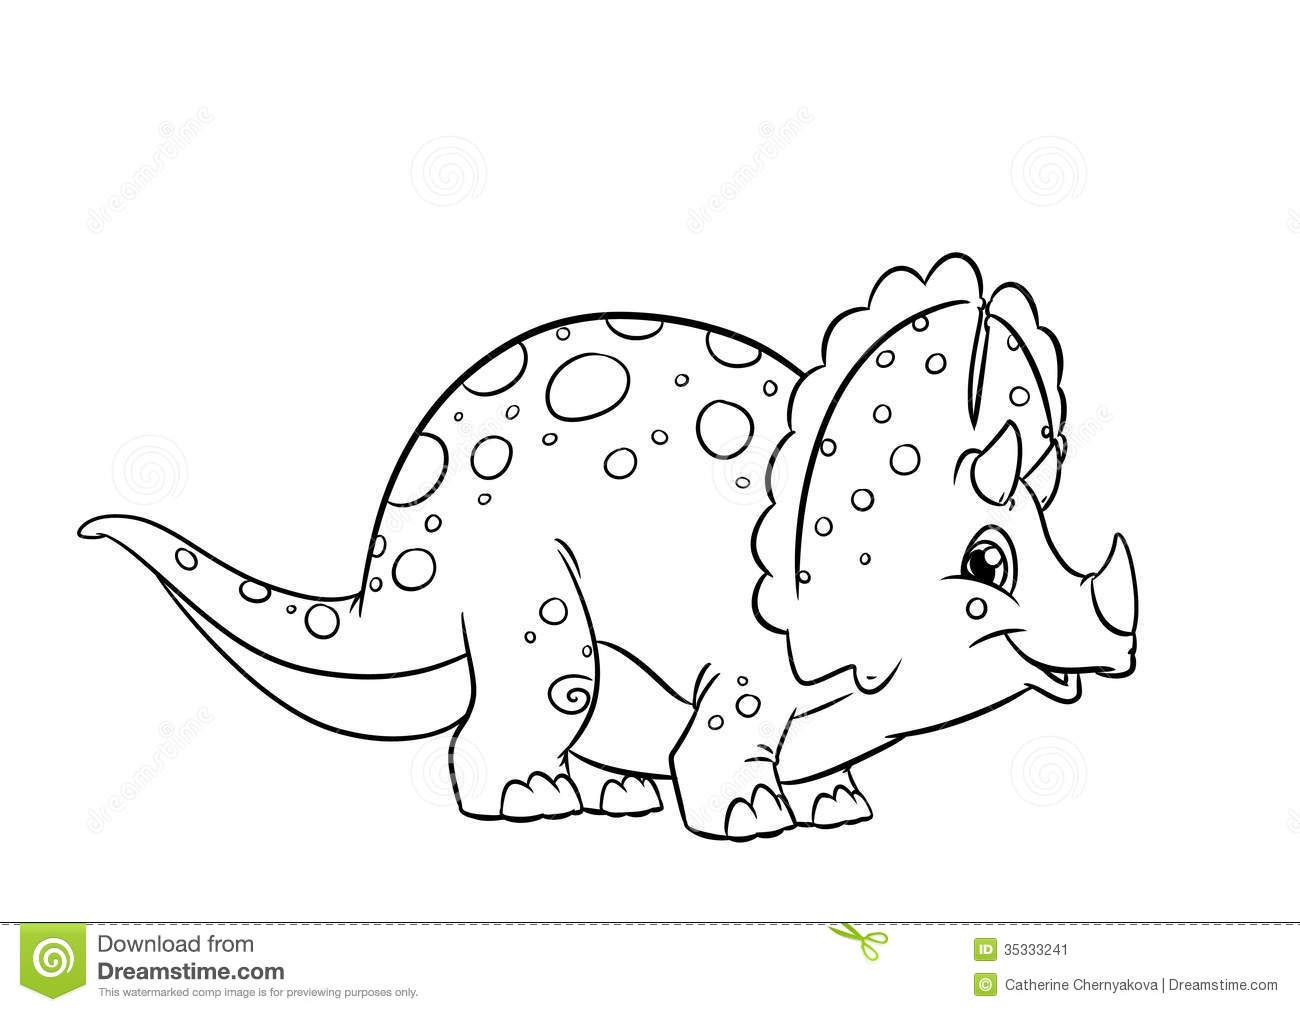 Dinosaur Triceratops Coloring Pages Download From Over 42